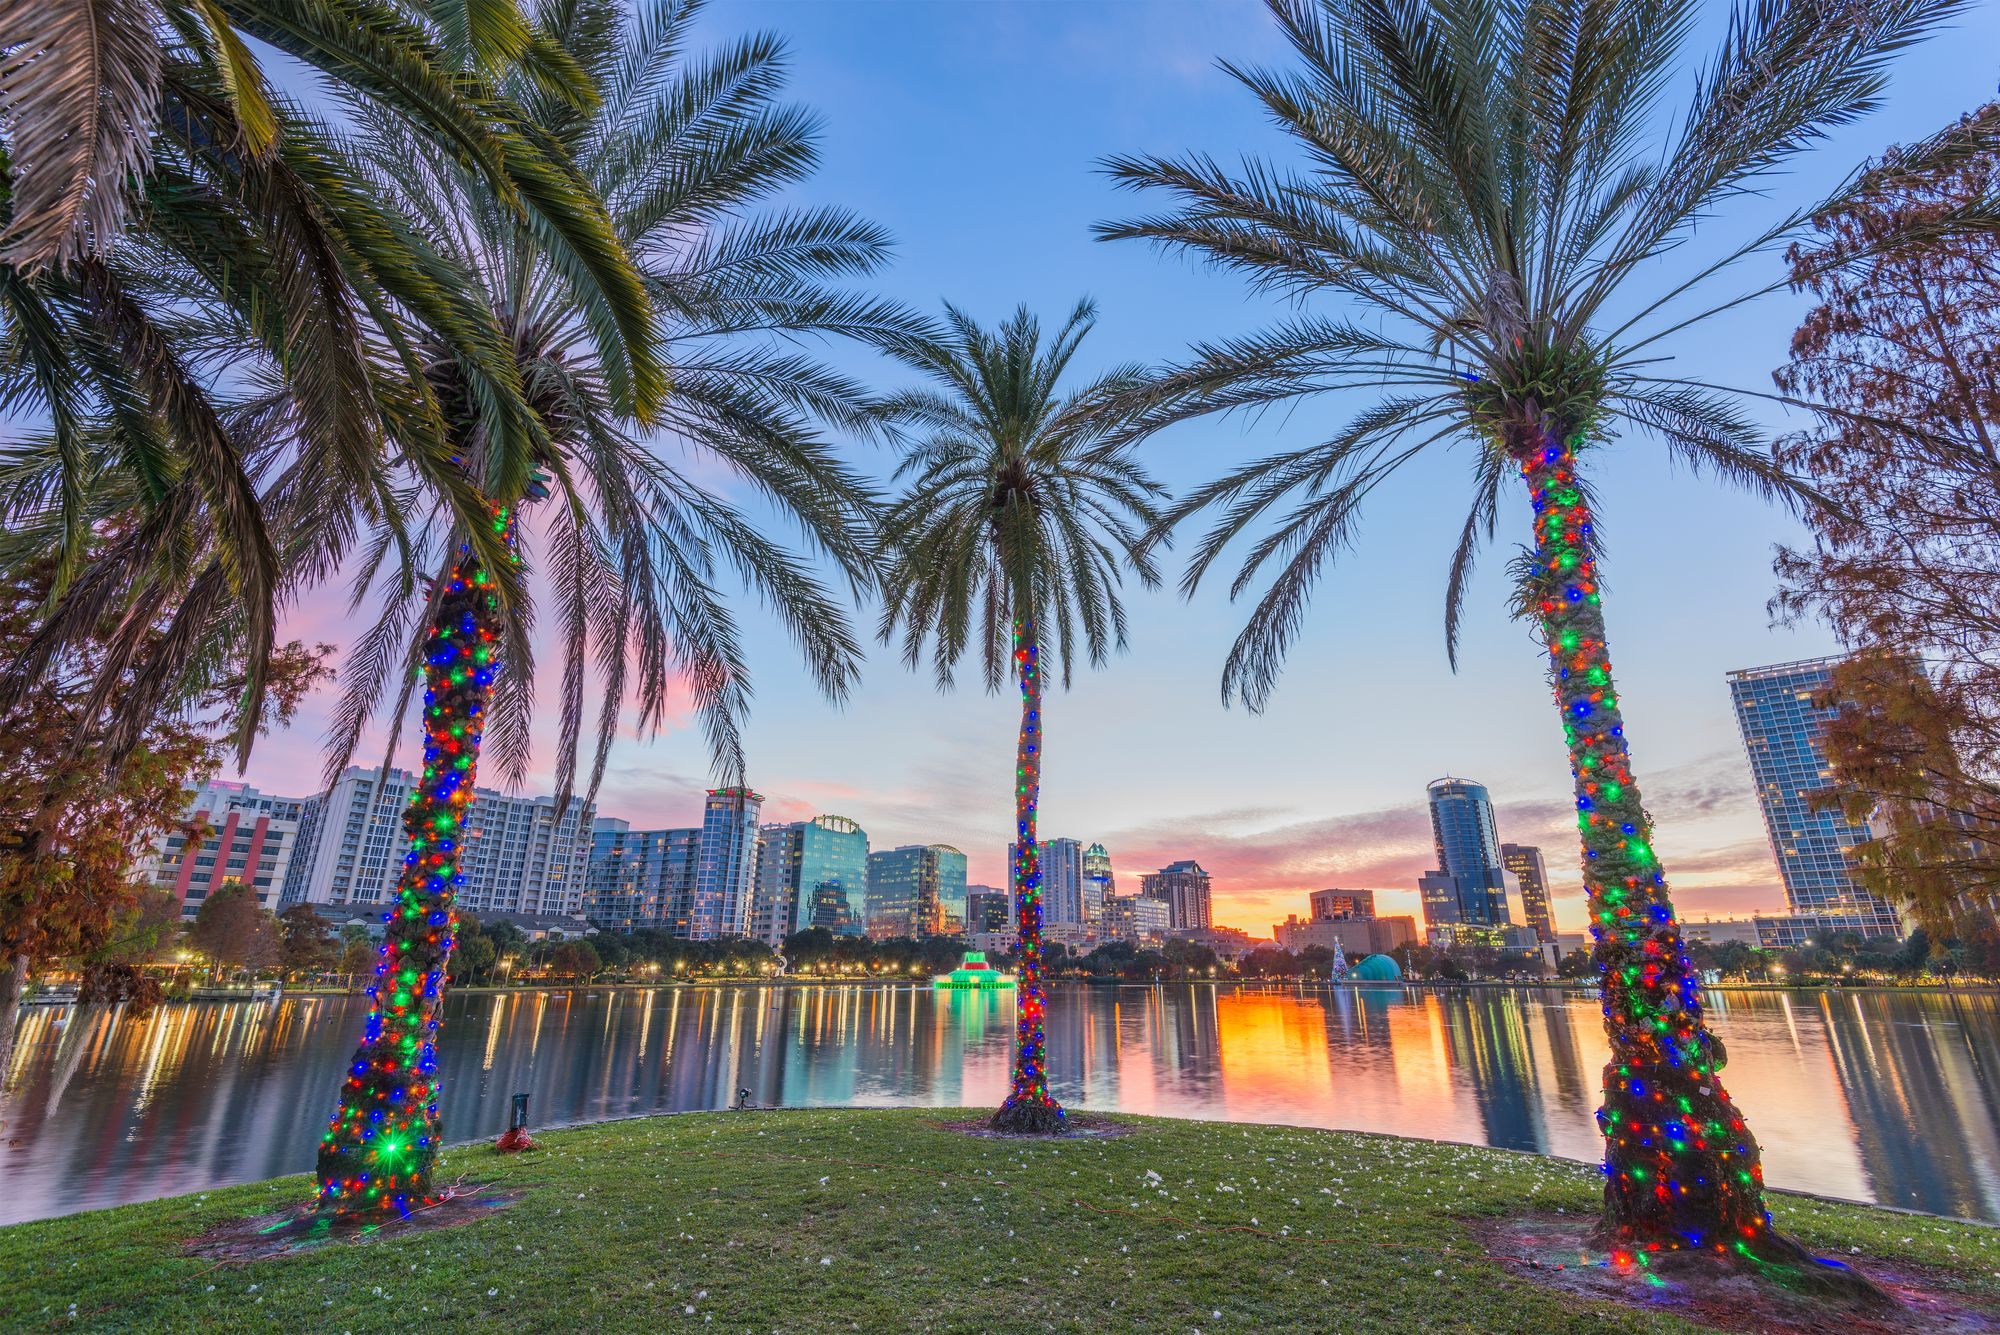 Florida palm trees decorated for Christmas